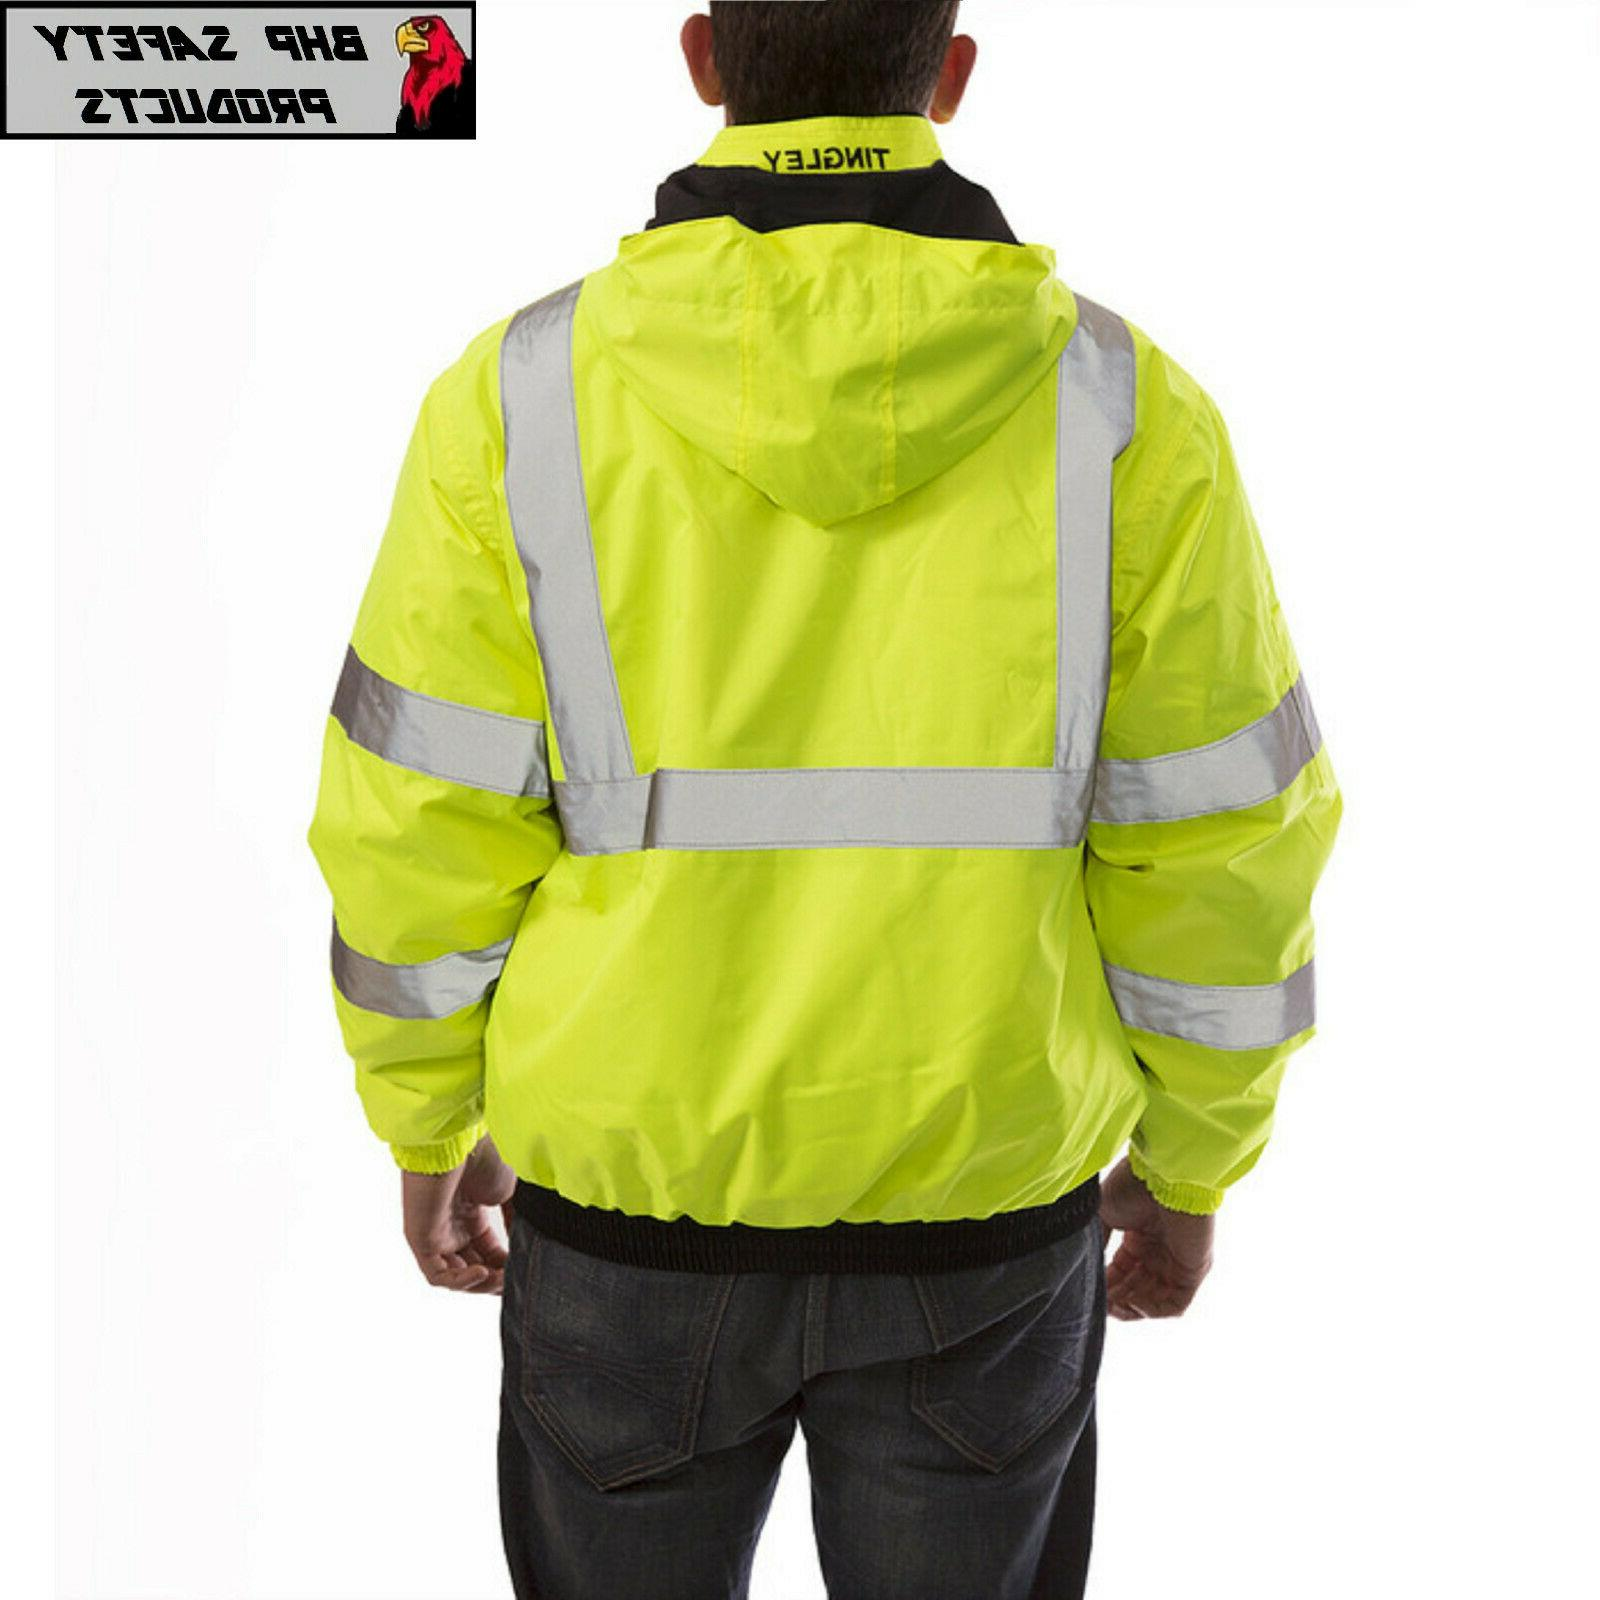 Hi-Vis Insulated Safety Jacket and ROAD WORK HIGH